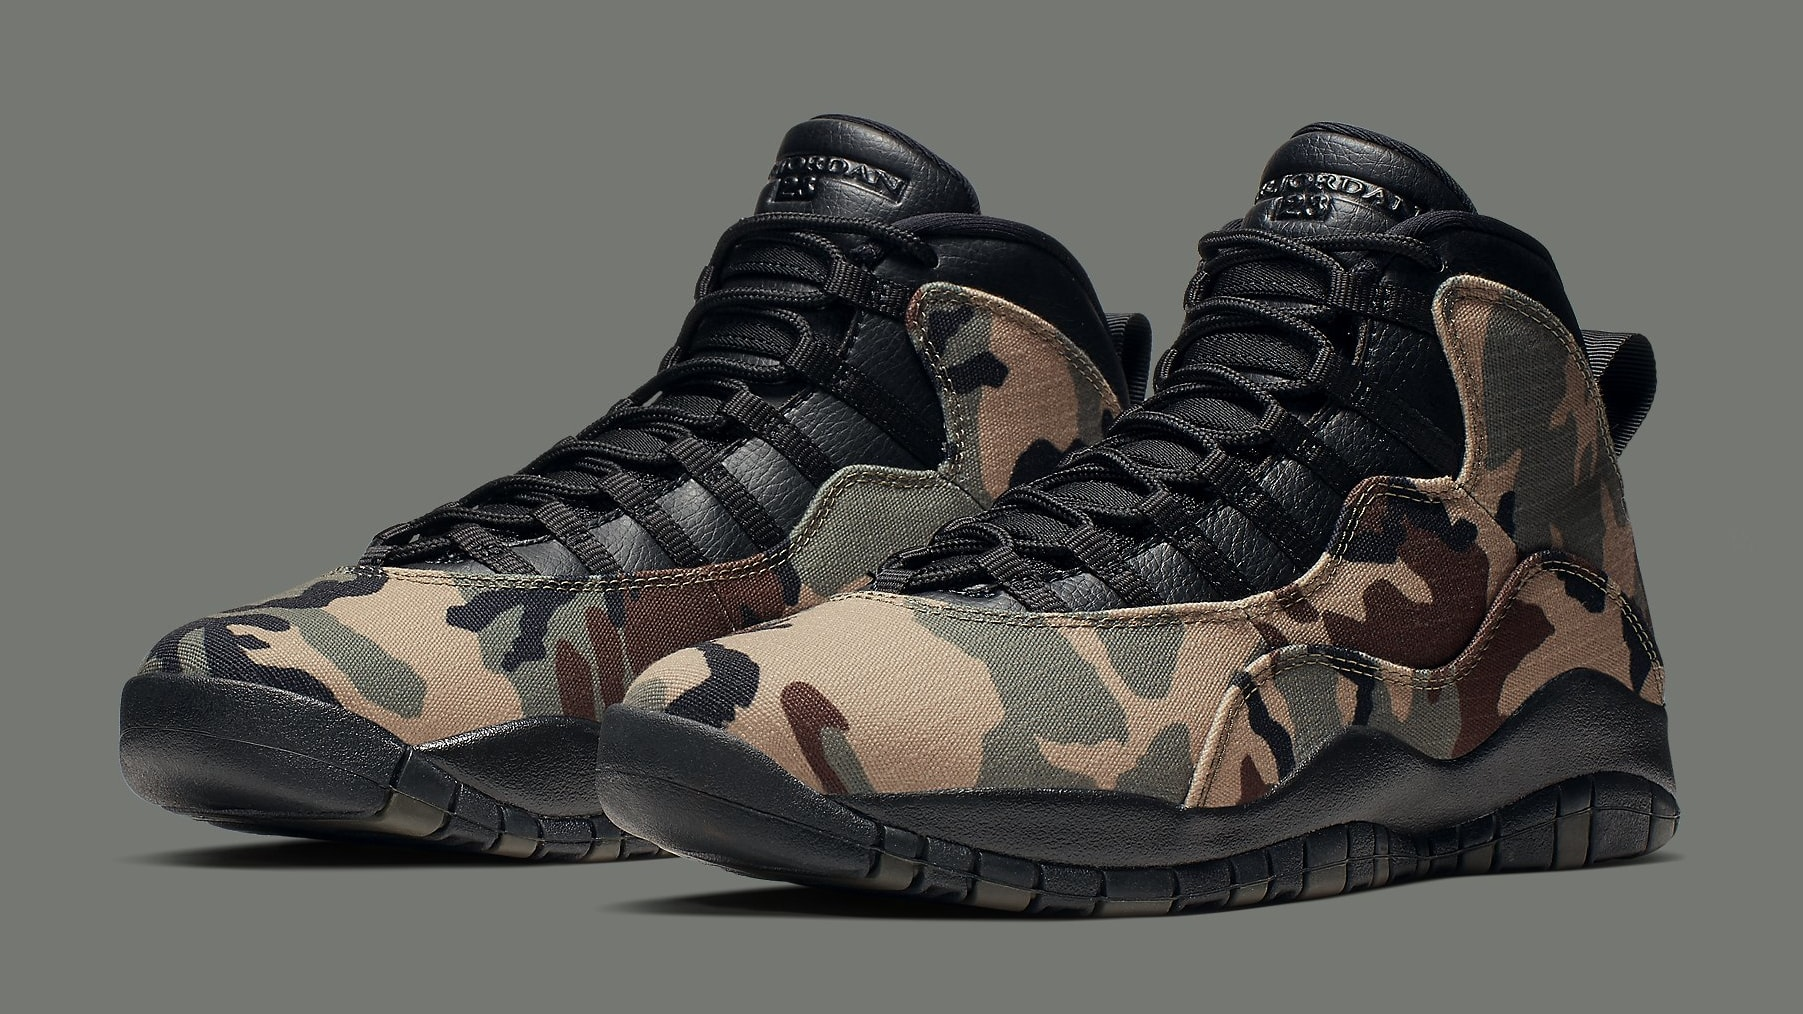 Detailed Look at Both 'Camo' Air Jordan 10s